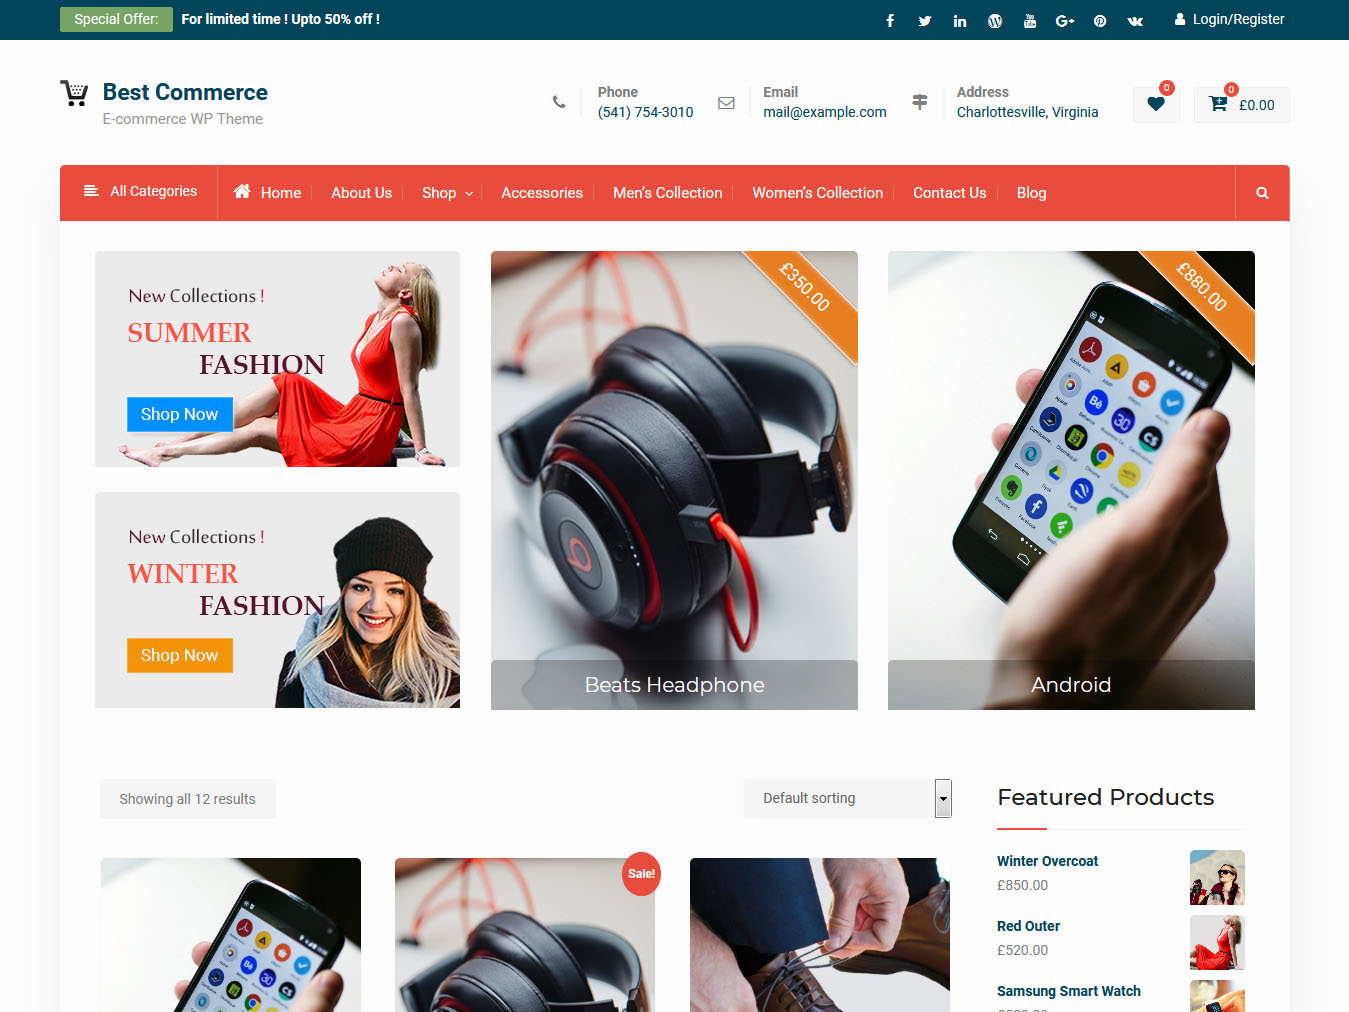 Best Commerce - Best Free WordPress WooCommerce Theme